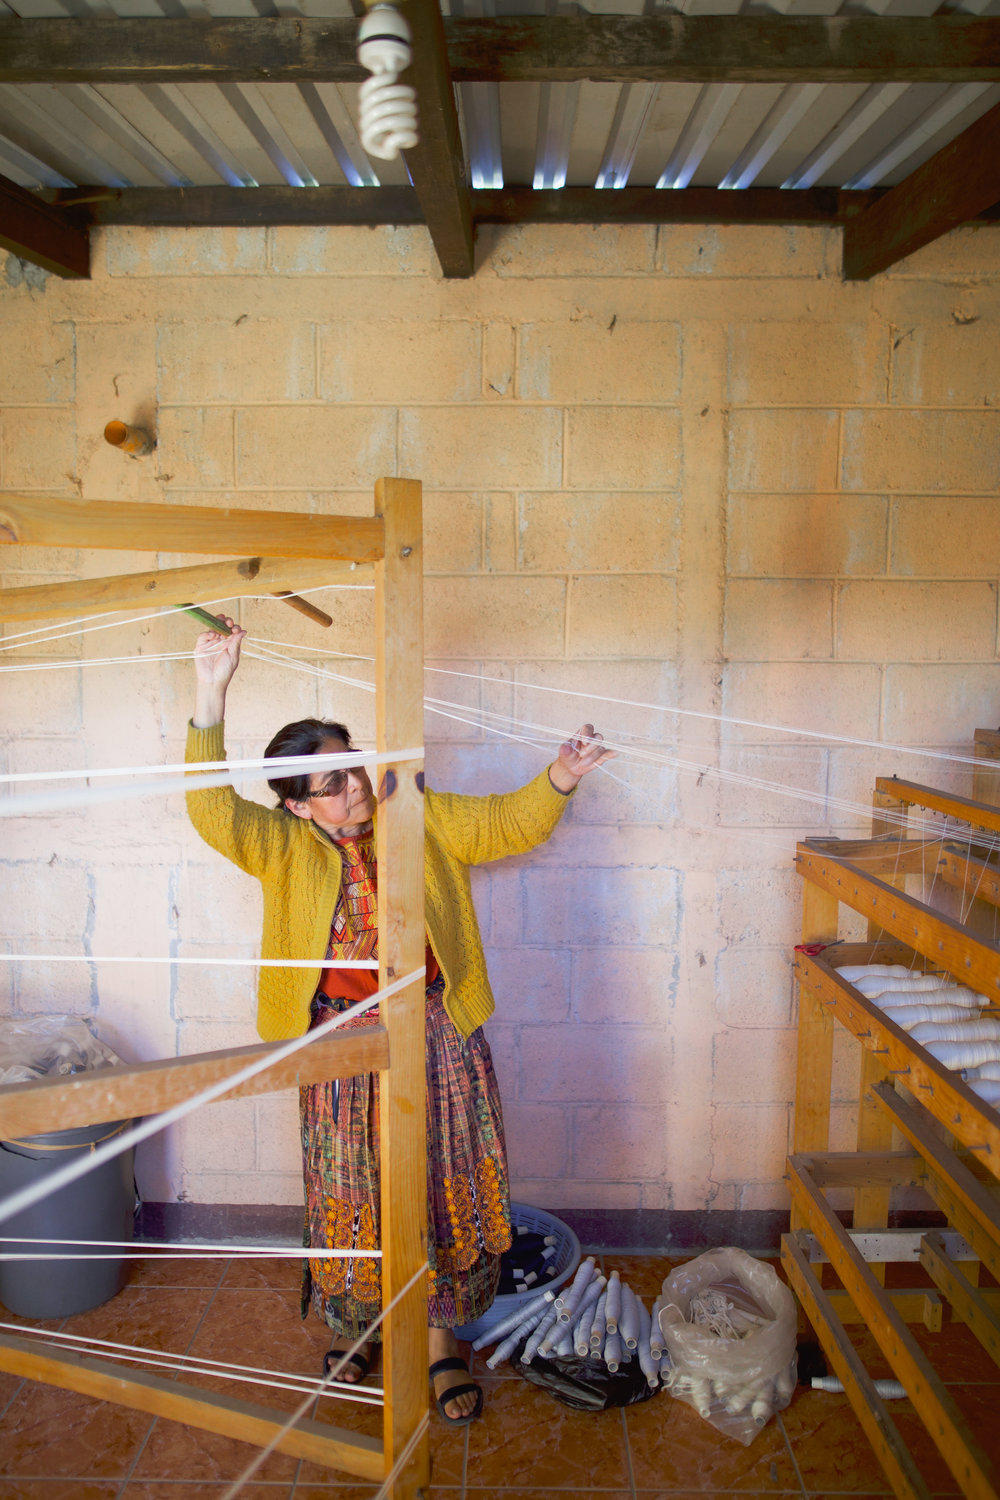 LIDIA SERECH CUTZAL SEPARATES AND ORDERS HER THREADS PREPARING TO WEAVING IN COMALAPA, GUATEMALA ON JAN. 12. SERECH WOVE HER FIRST TABLECLOTH WHEN SHE WAS 8 YEARS OLD.